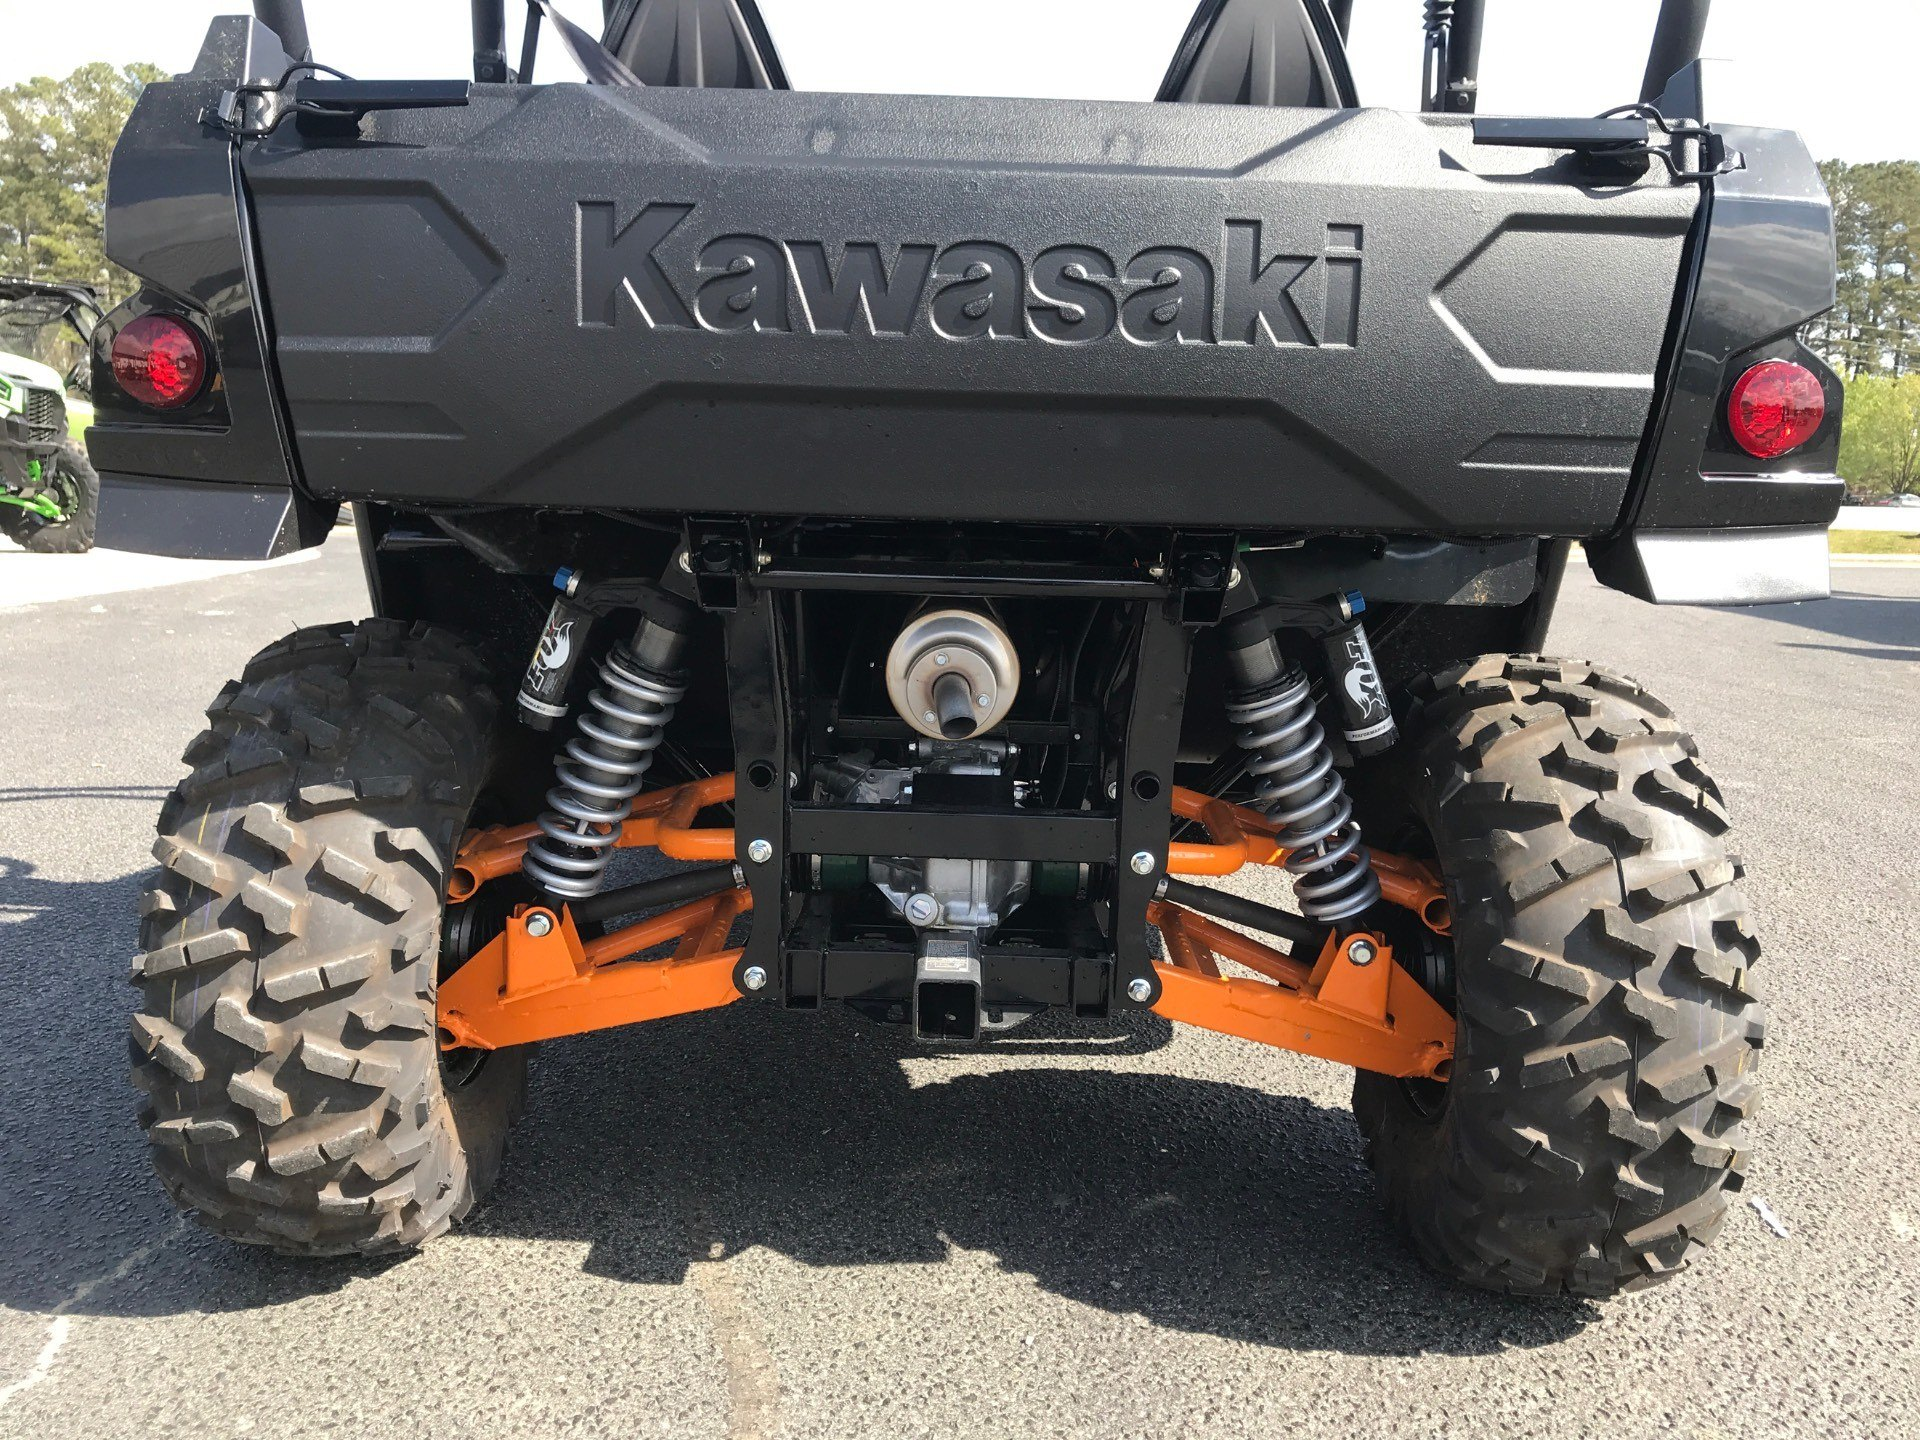 2020 Kawasaki Teryx in Greenville, North Carolina - Photo 18